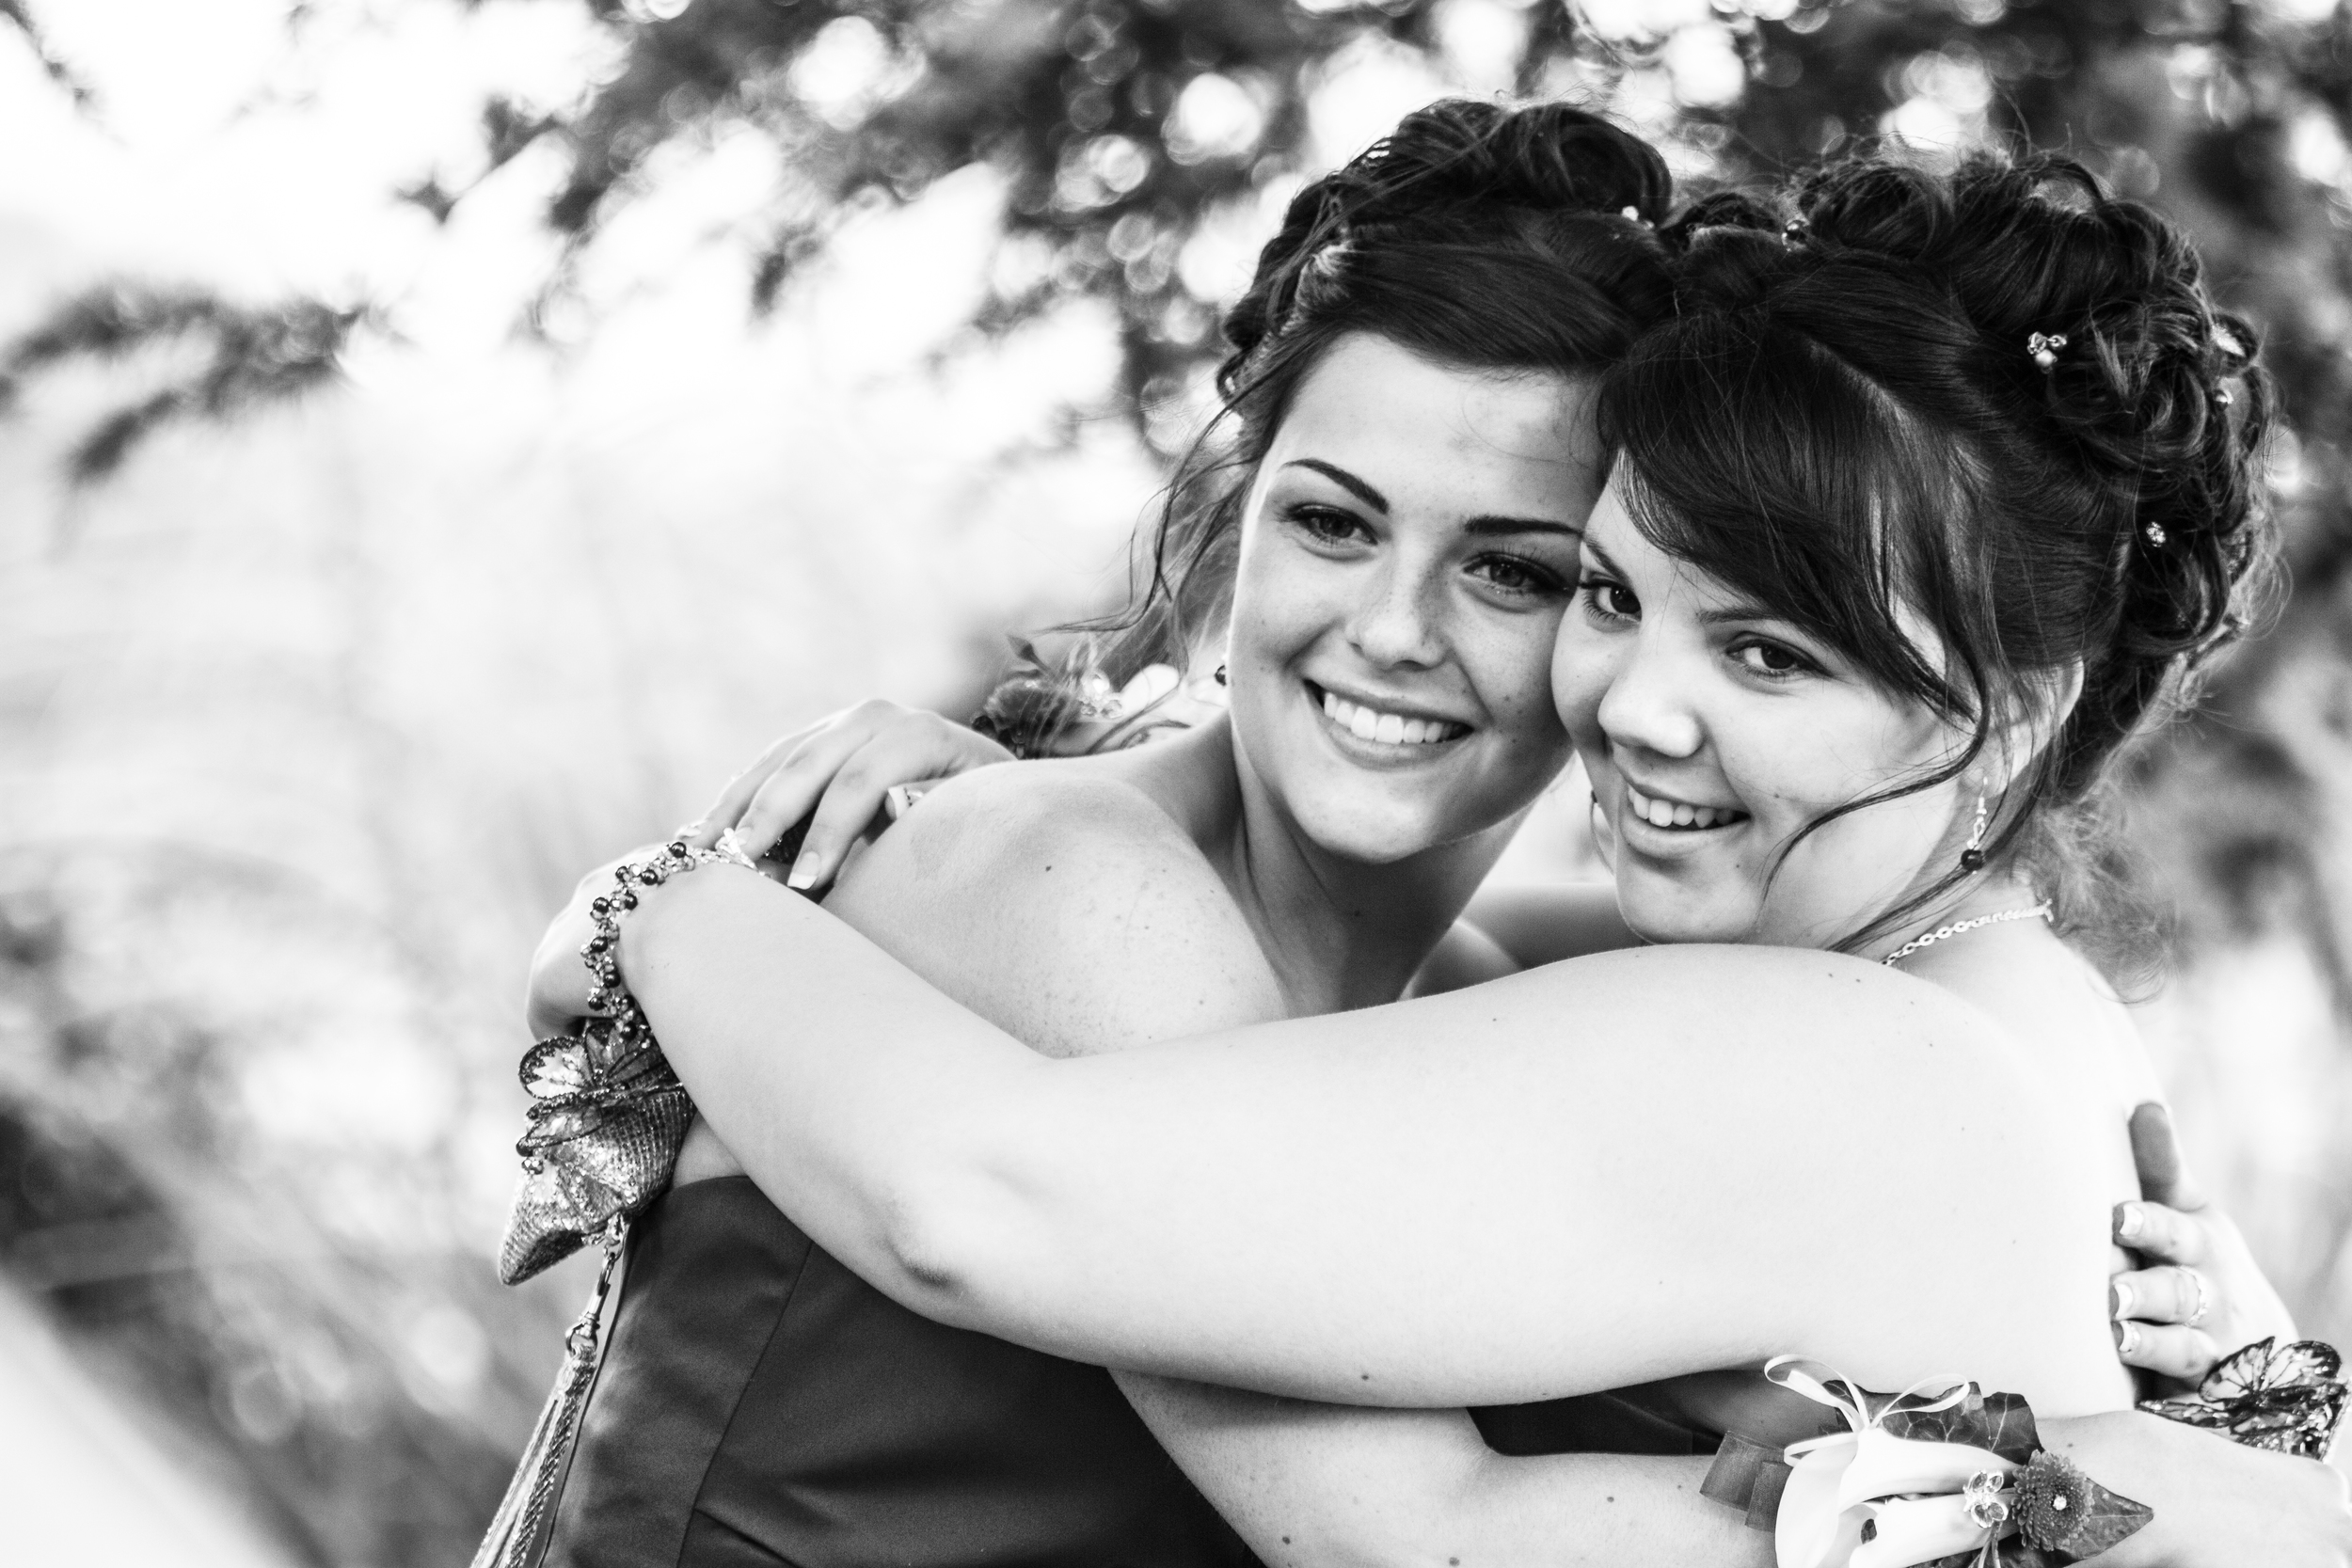 22-06-2013_Alex_Pople_Jess_Lewis_Wedding_EDITED_00036.jpg